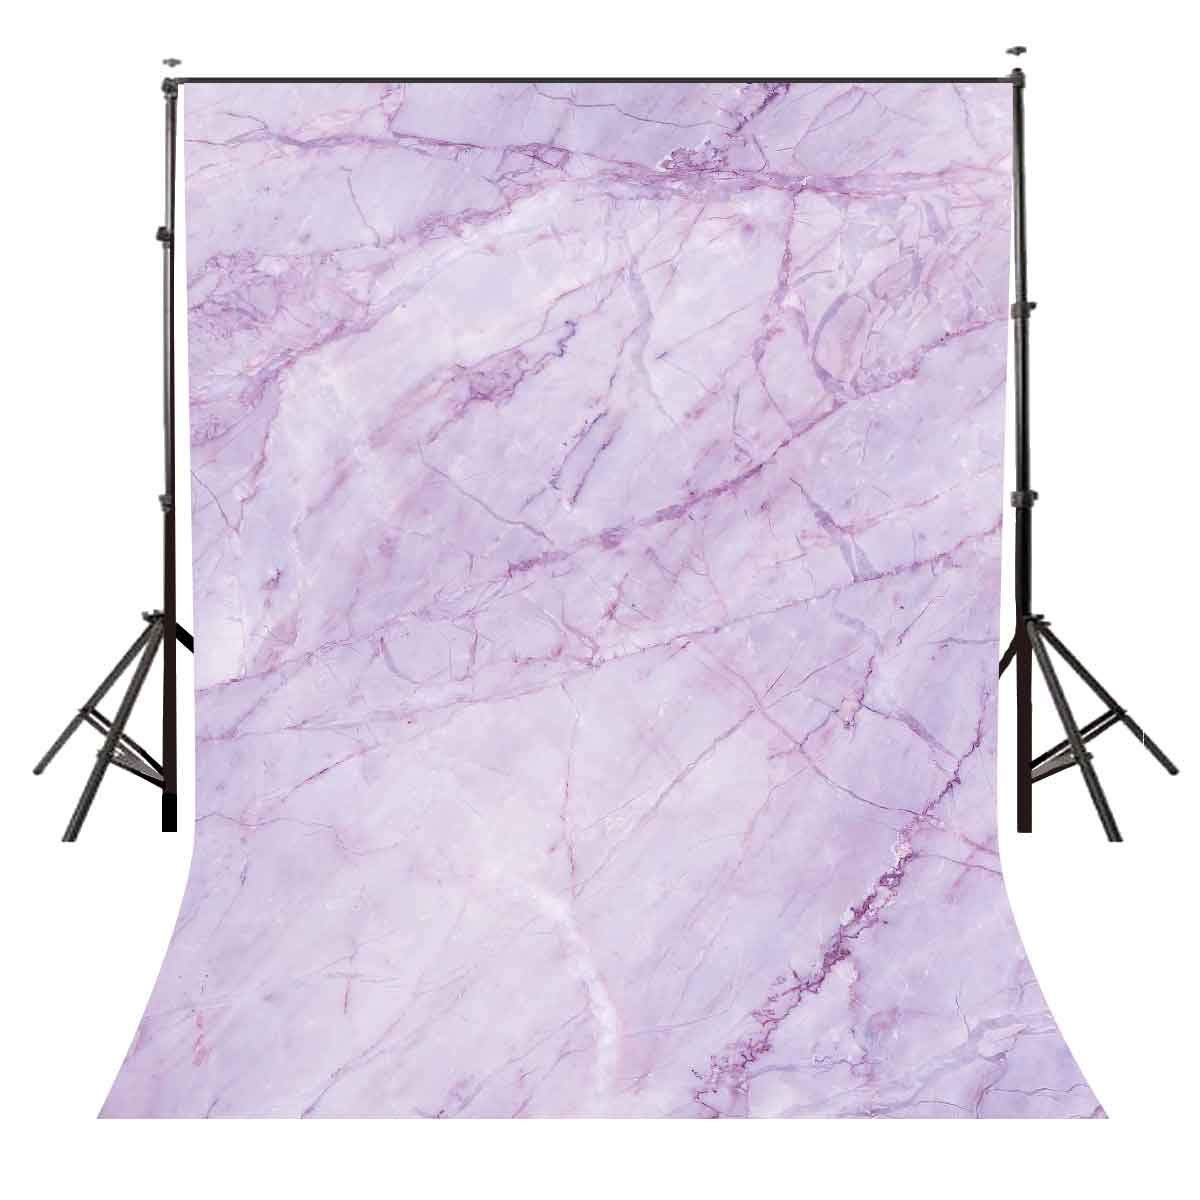 5x7ft Violet Marble Texture Pattern Backdrop for Photo Shoot Background Photography Studio Props-in Photo Studio Accessories from Consumer Electronics